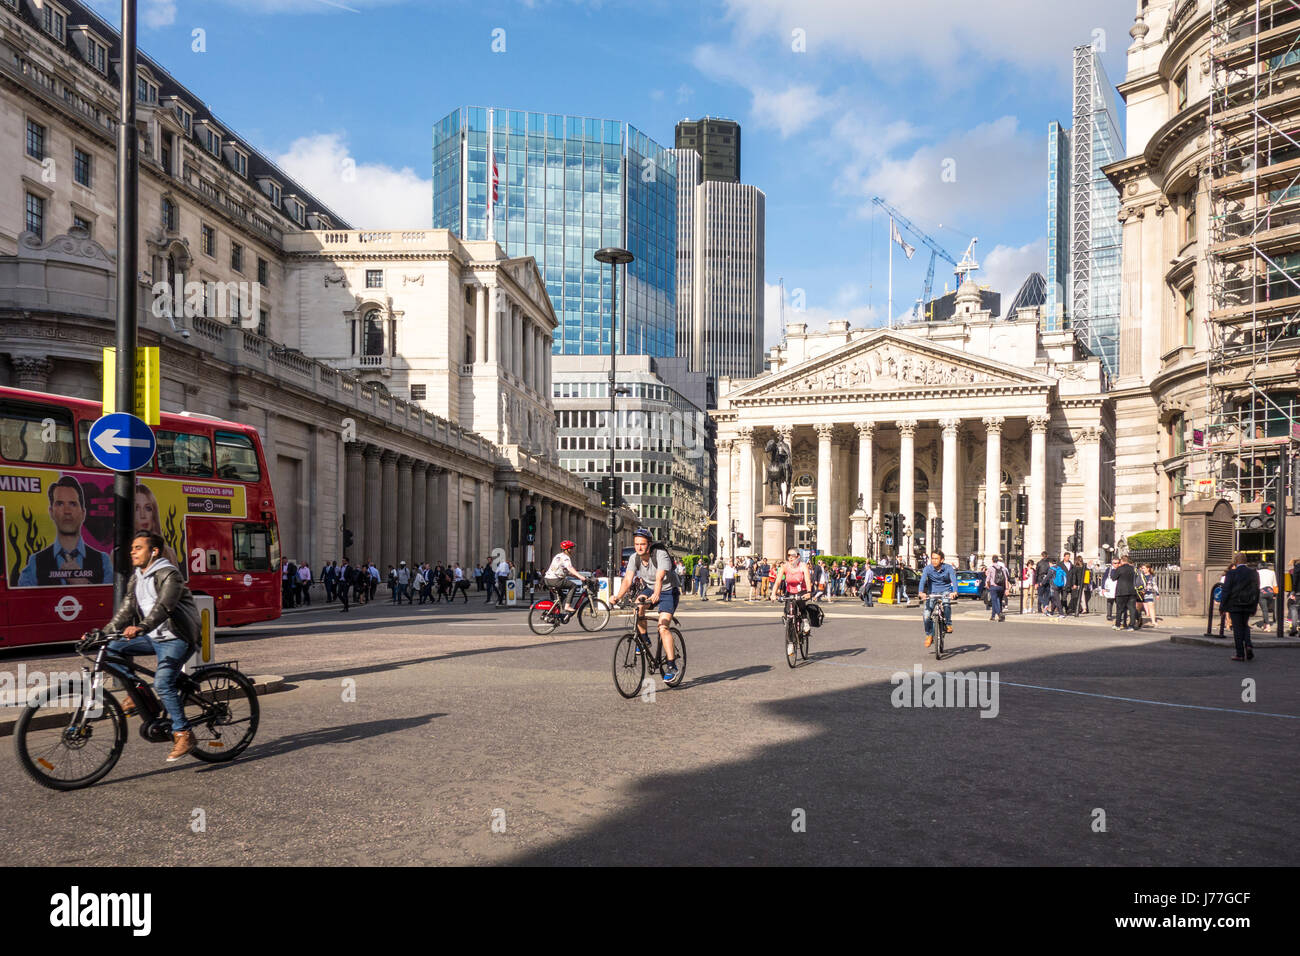 City of London, UK. 23rd May 2017. City of London Corporation launch 'Bank on Safety', an 18 month trial to limit Stock Photo